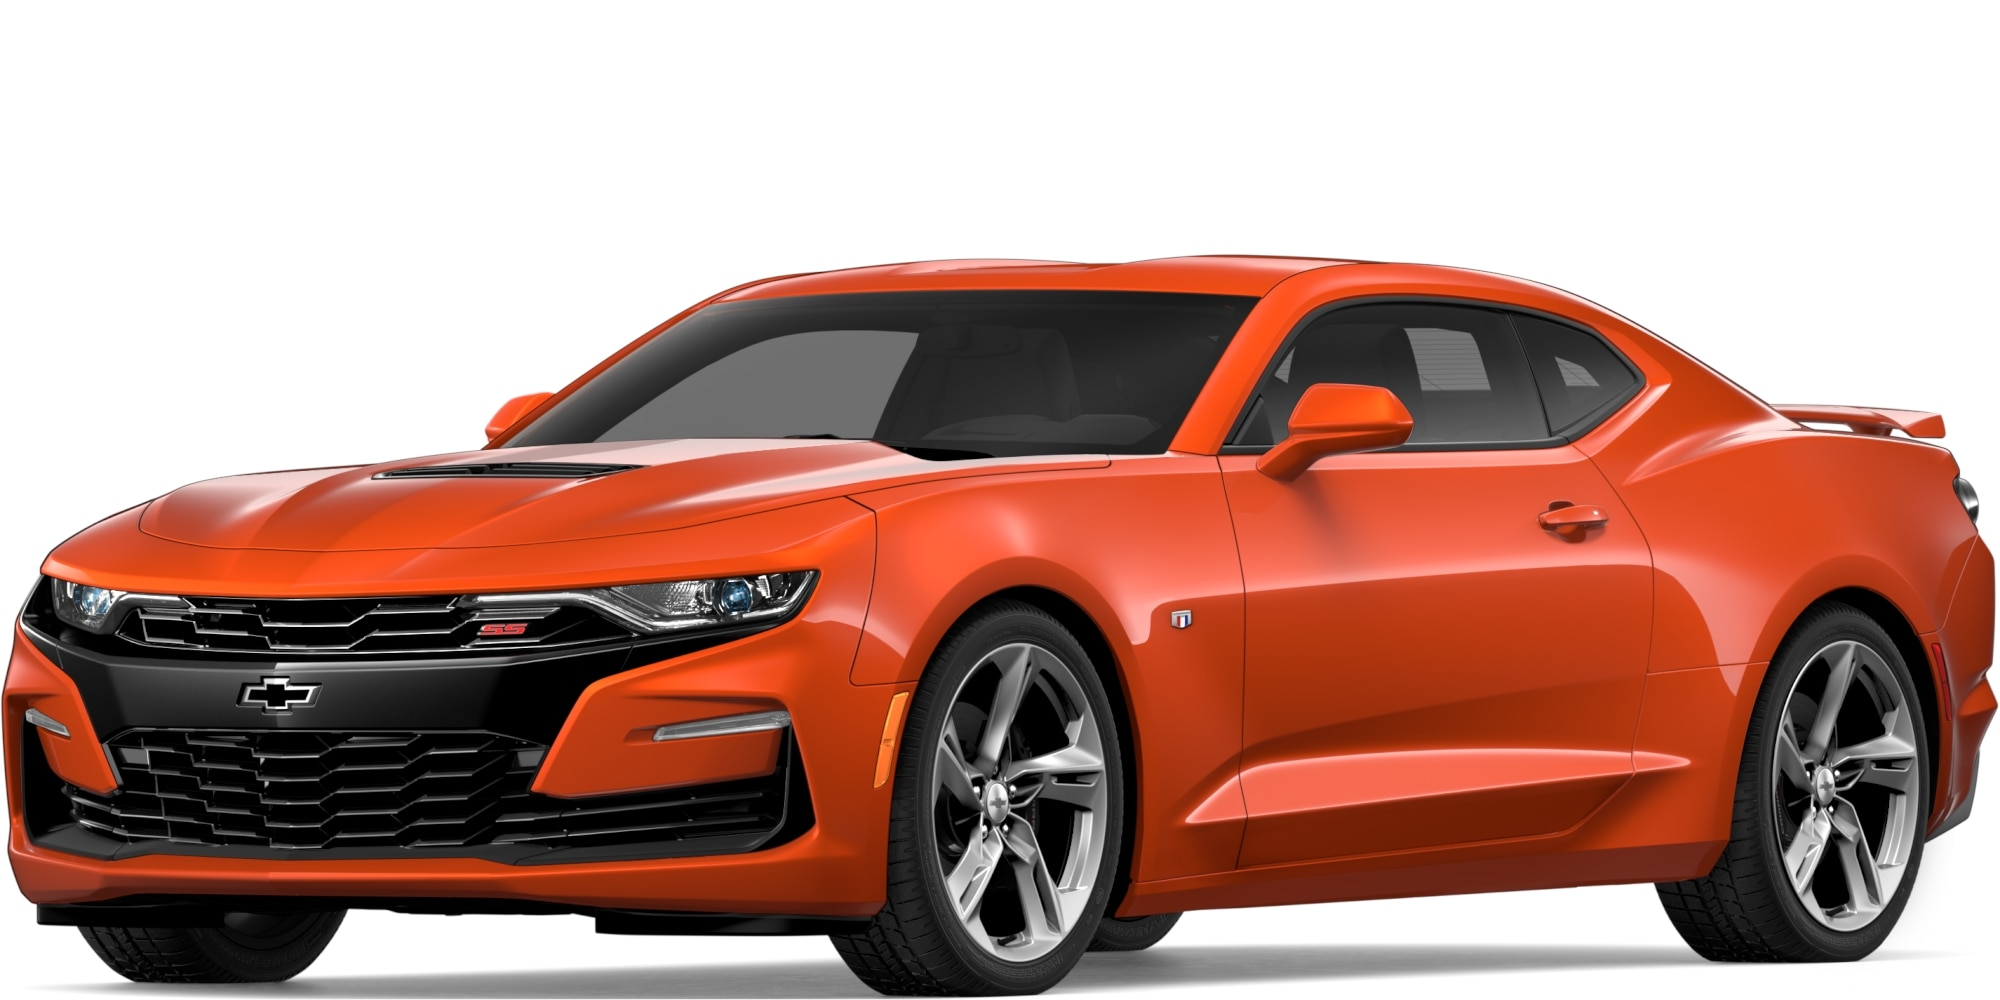 Chevrolet Camaro 2019 en Crush